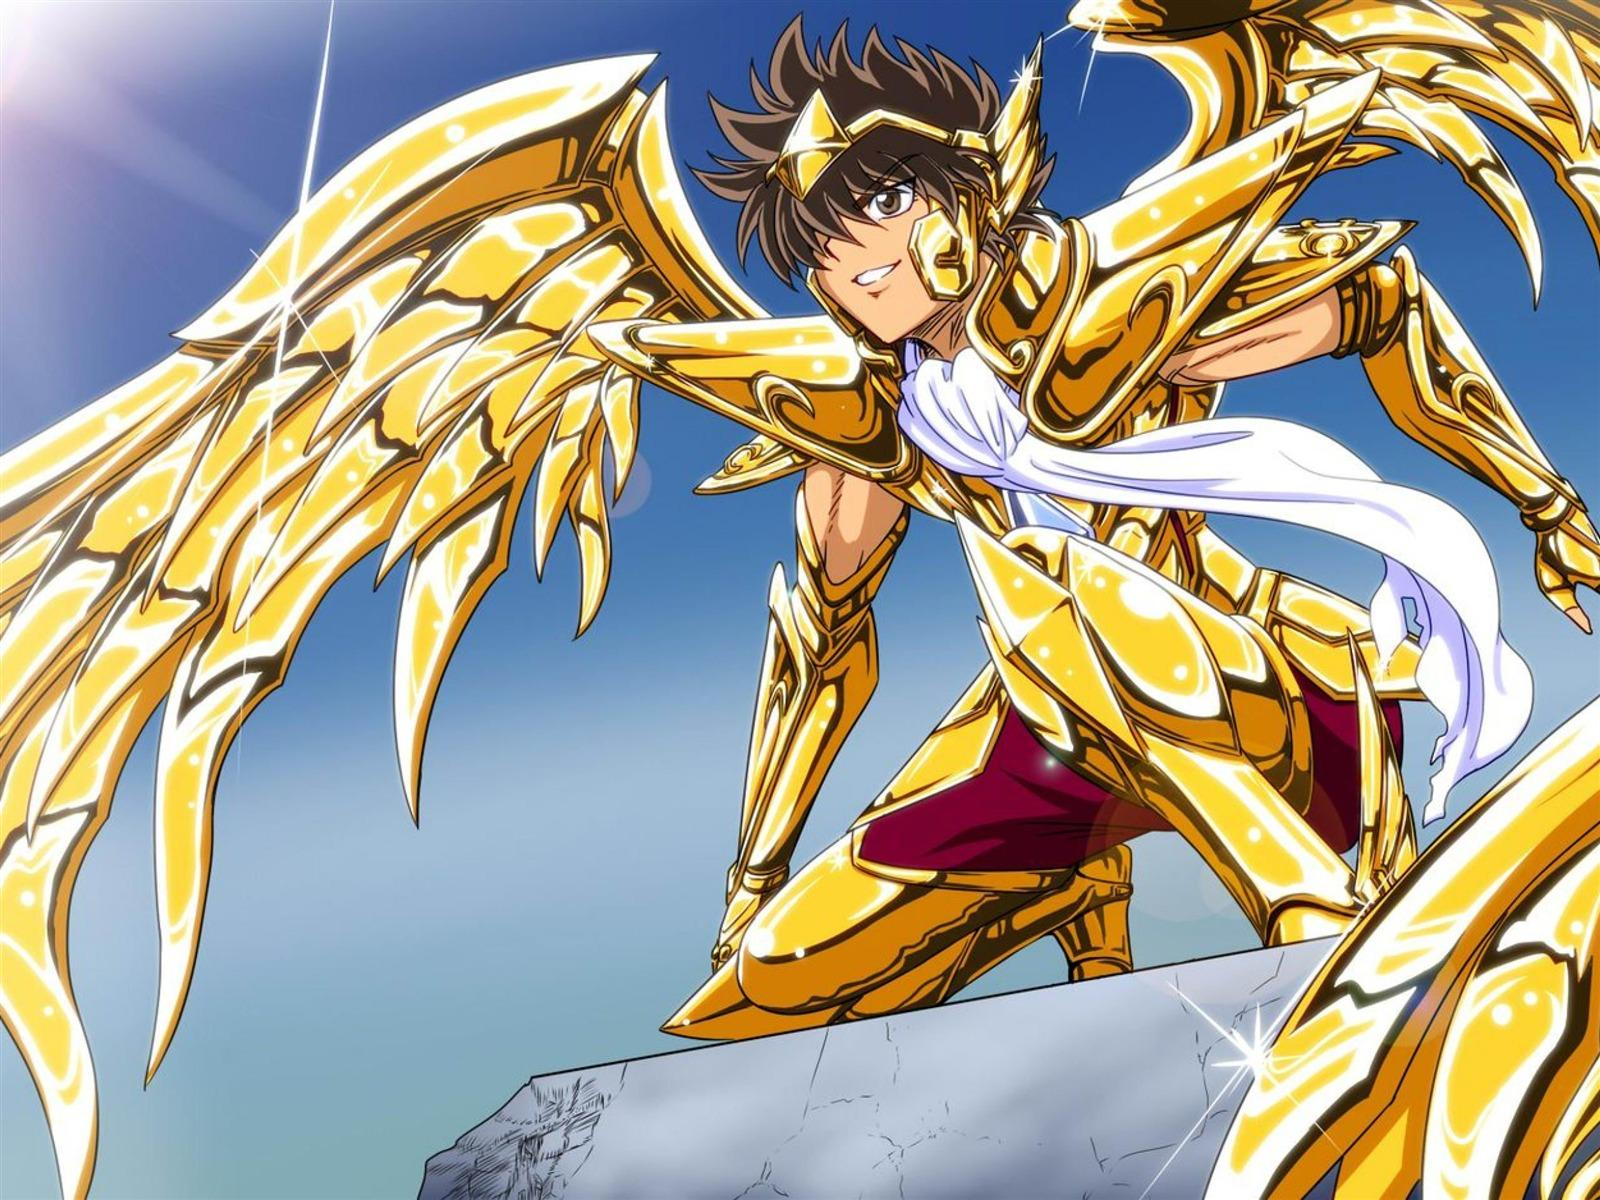 Saint Seiya Soul Of Gold Anime In The Works